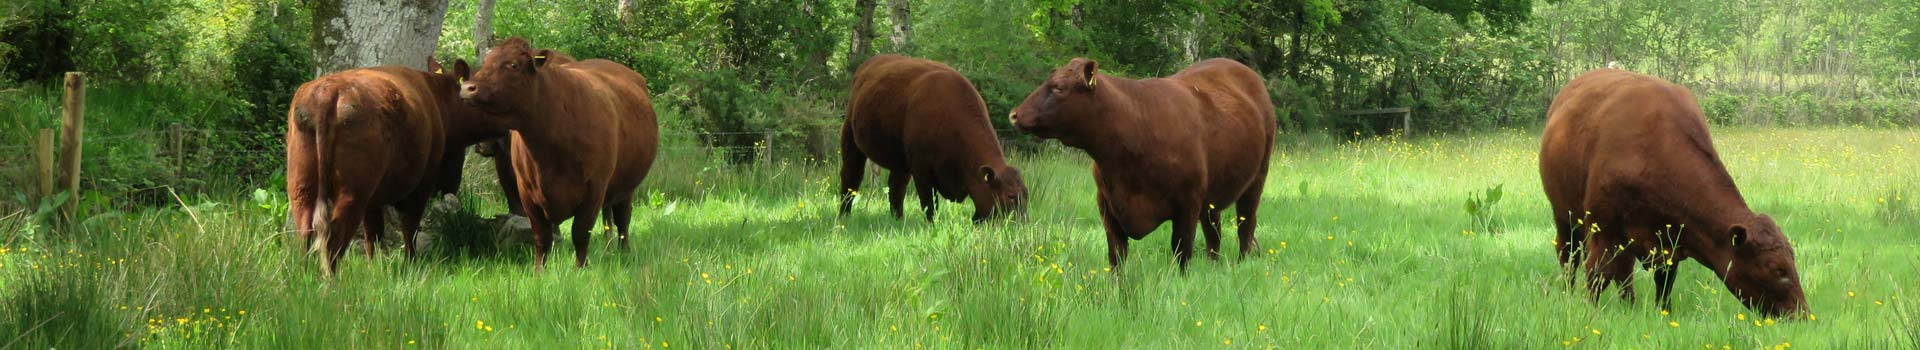 Red Ruby Devon cattle in a field during the cattle for beginners course by smallholder training at South Yeo Farm West